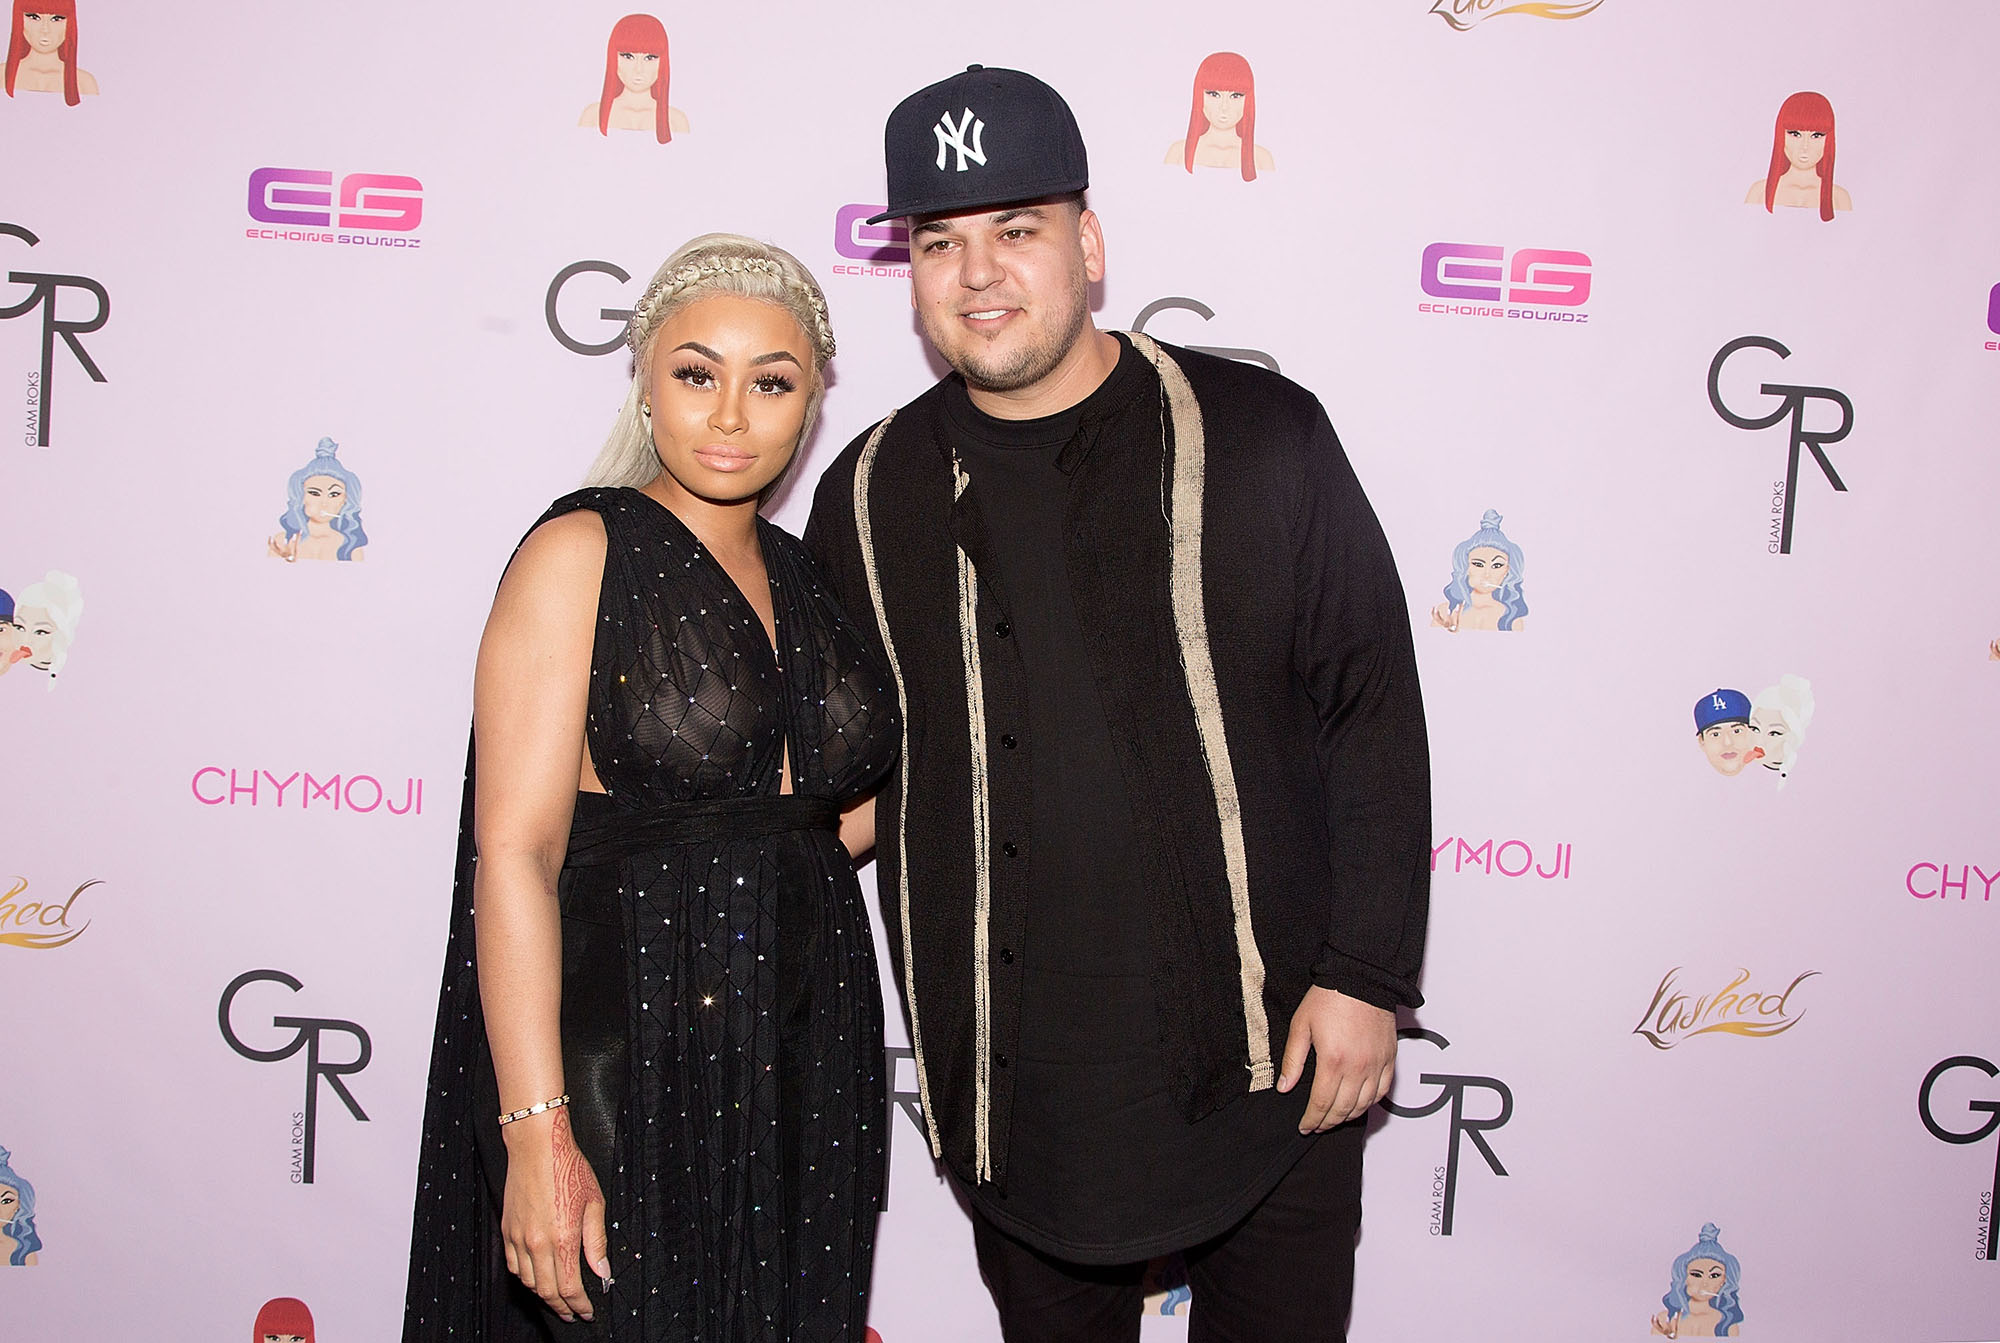 "HOLLYWOOD, CA - MAY 10: Blac Chyna (L) and Rob Kardashian arrive for her Blac Chyna's birthday celebration and unveiling of her ""Chymoji"" Emoji Collection at Hard Rock Cafe, Hollywood, CA on May 10, 2016 in Hollywood, California. (Photo by Gabriel Olsen/WireImage)"